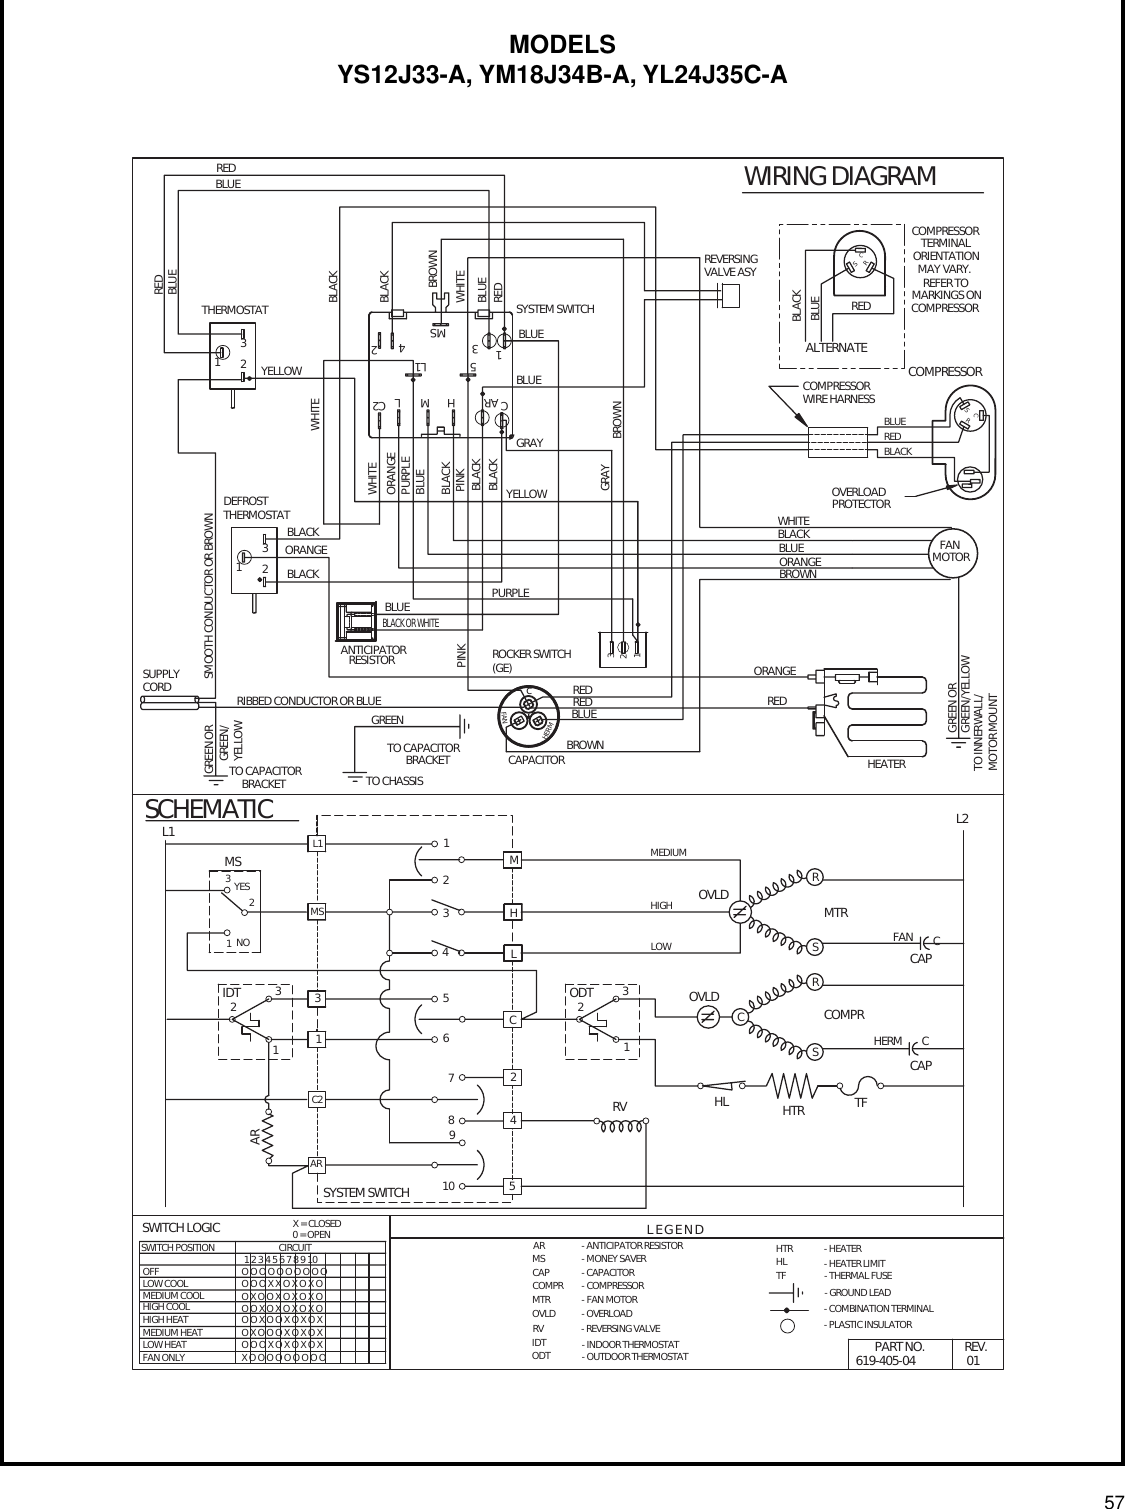 friedrich wiring diagrams wiring diagram 3 phase air conditioner wiring diagram model us10b30a room air conditioner